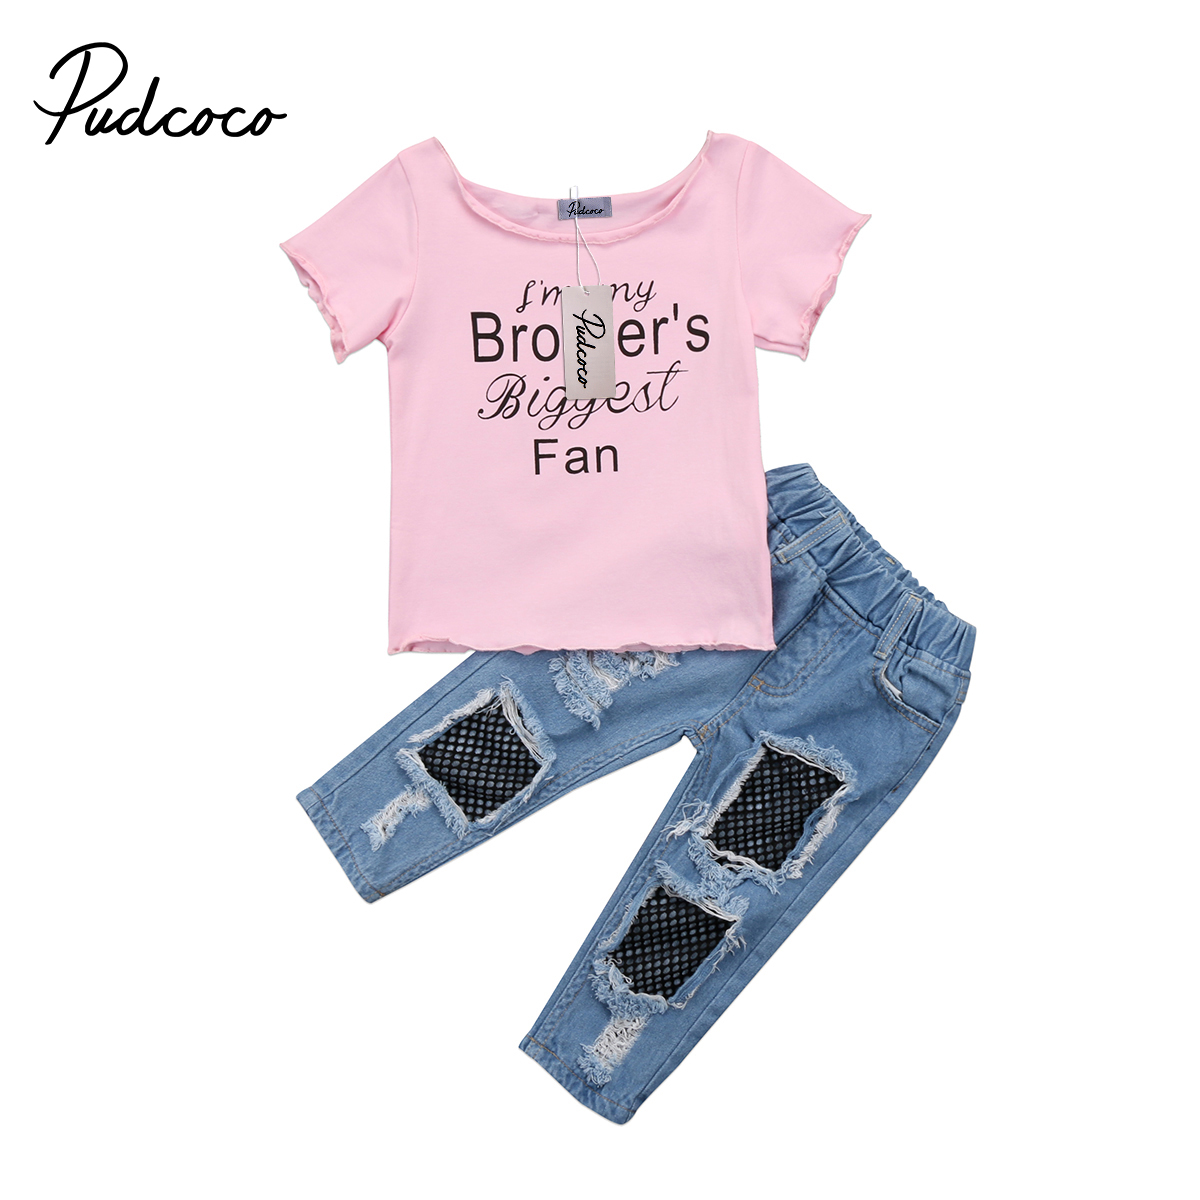 Kids Toddler Baby Girl Clothing <font><b>Brother</b></font> Shirt Letter Print Tops+Fish Net <font><b>Jeans</b></font> Long Pant 2pcs Outfits Set Clothes